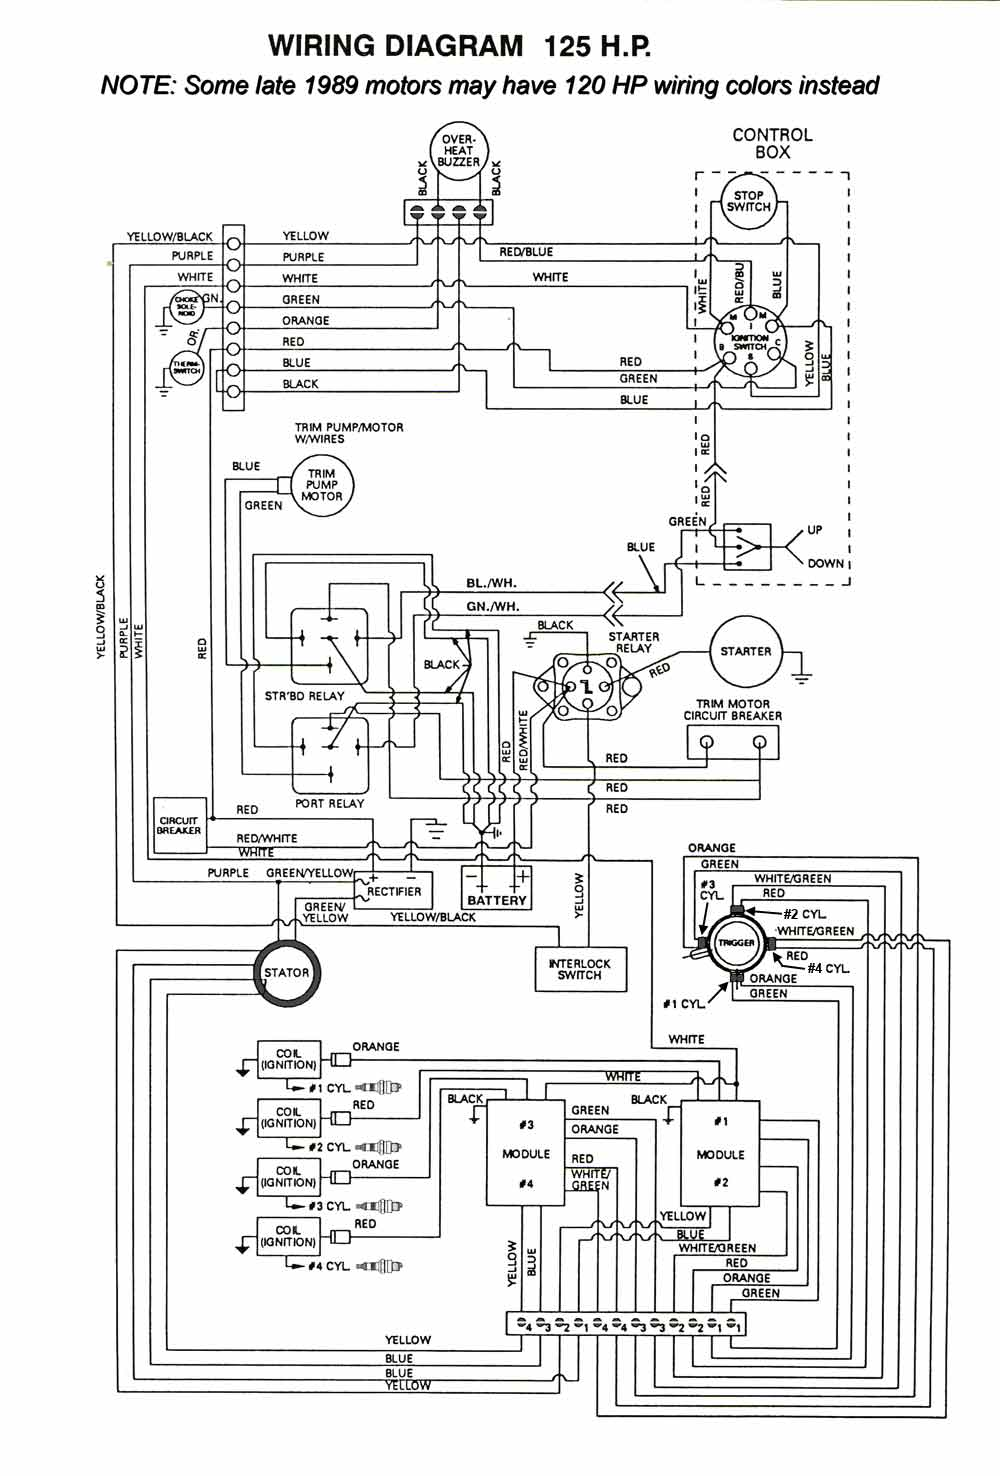 hight resolution of  125hp thru89 eng mastertech marine chrysler force outboard wiring diagrams at cita asia